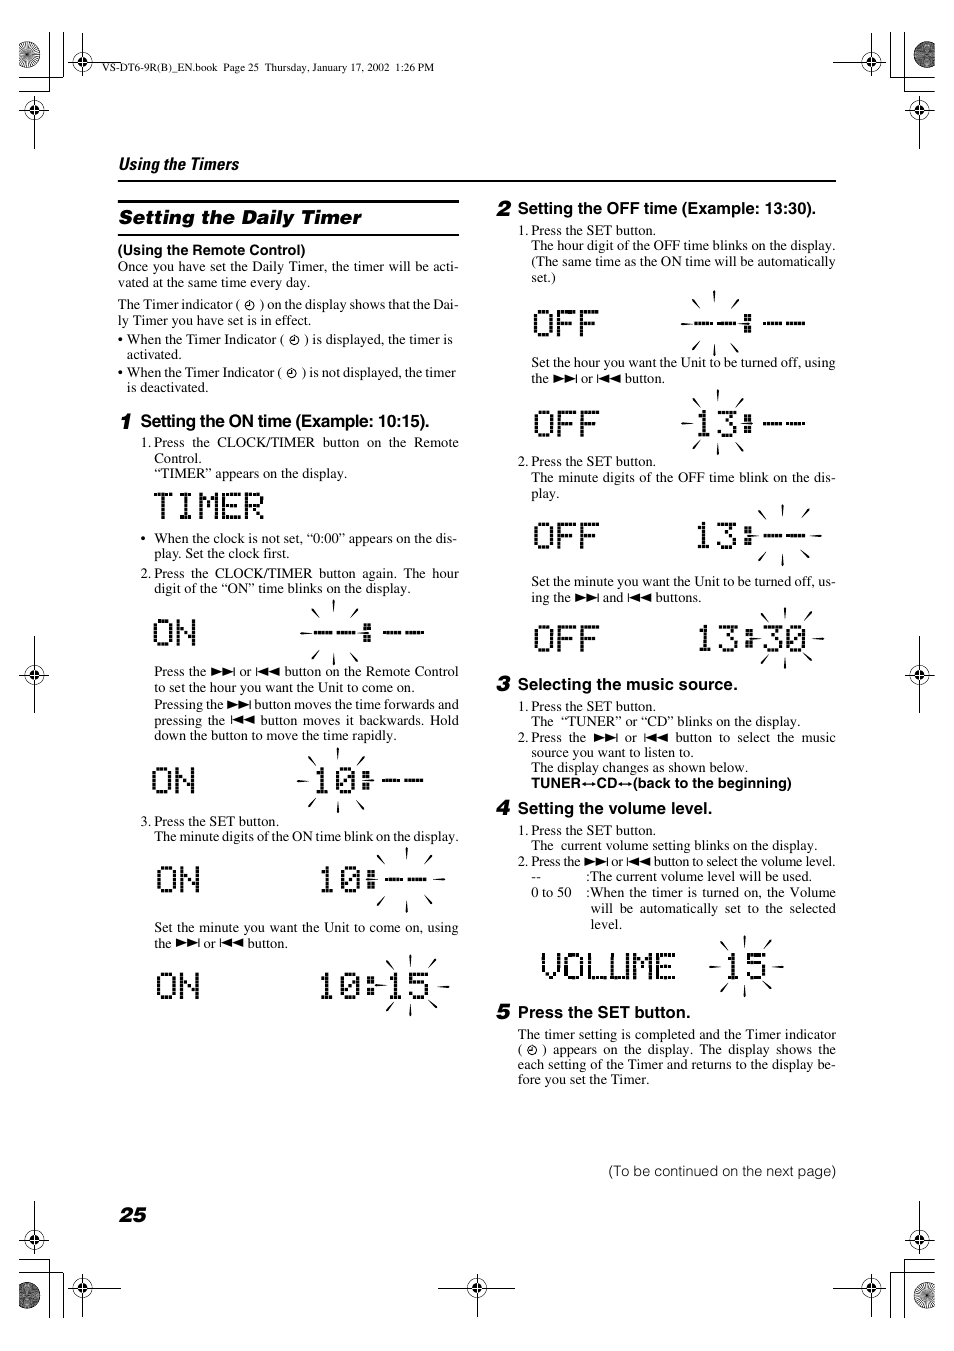 Setting the daily timer | JVC VS-DT6R EN User Manual | Page 28 /